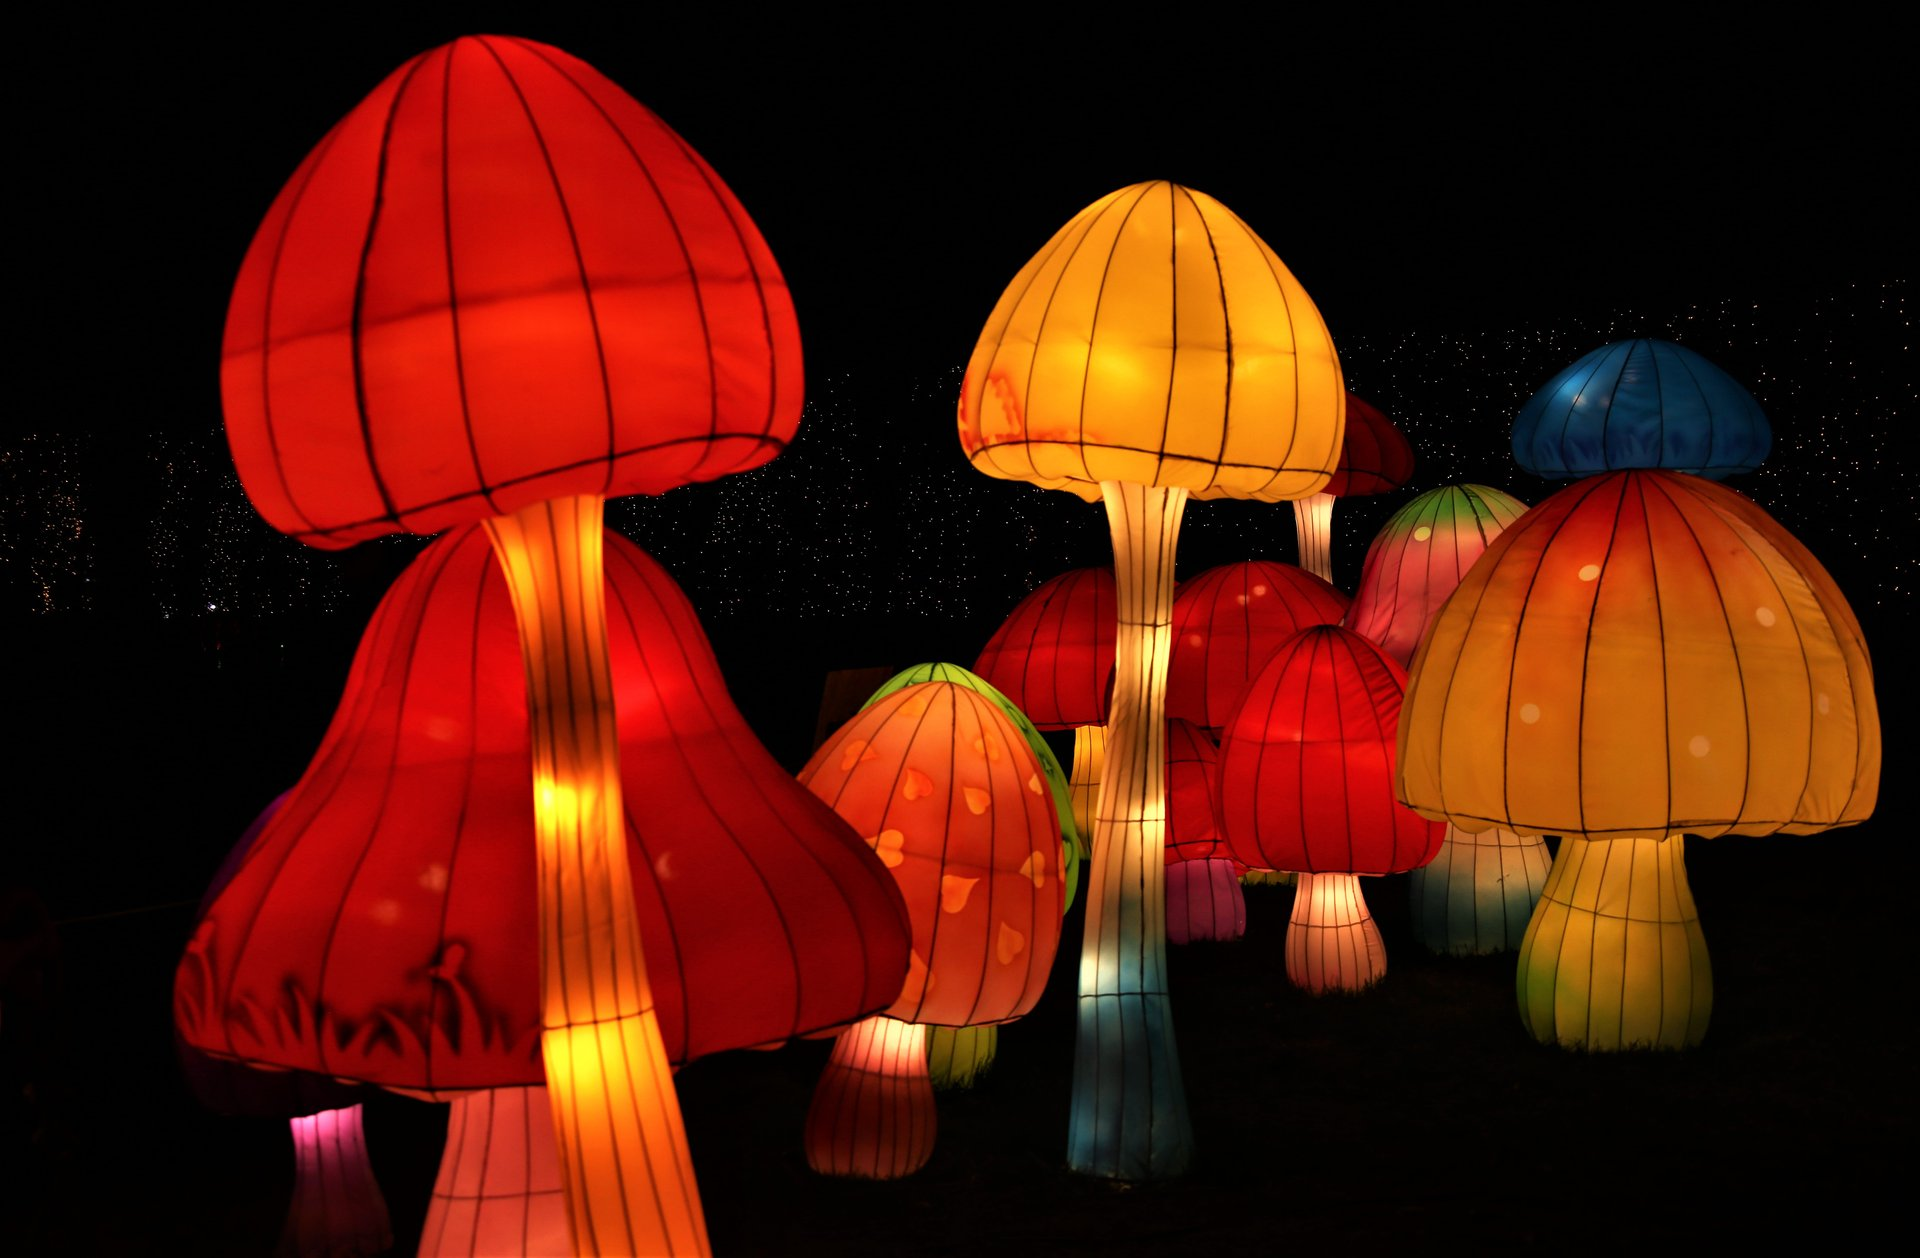 NYC Winter Lantern Festival in New York - Best Season 2020